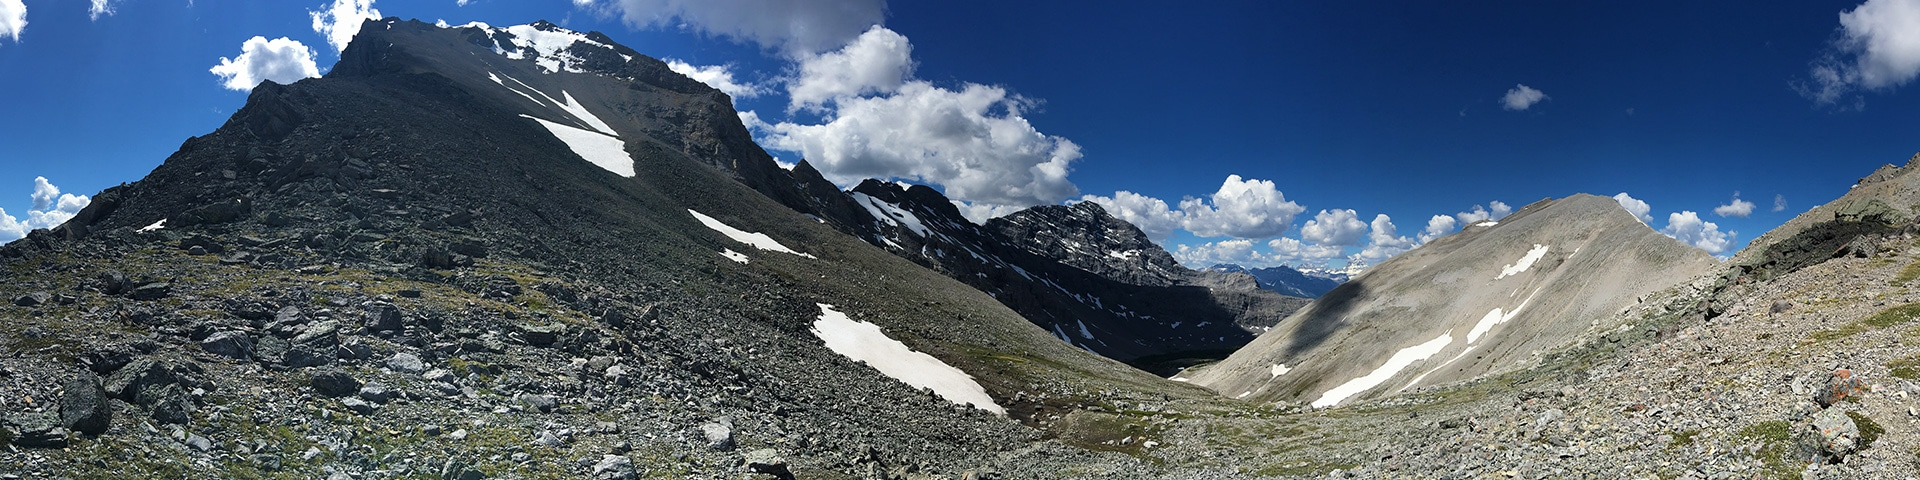 Panorama from the Buller Pass hike from Smith-Dorrien Trail in Kananaskis near Canmore